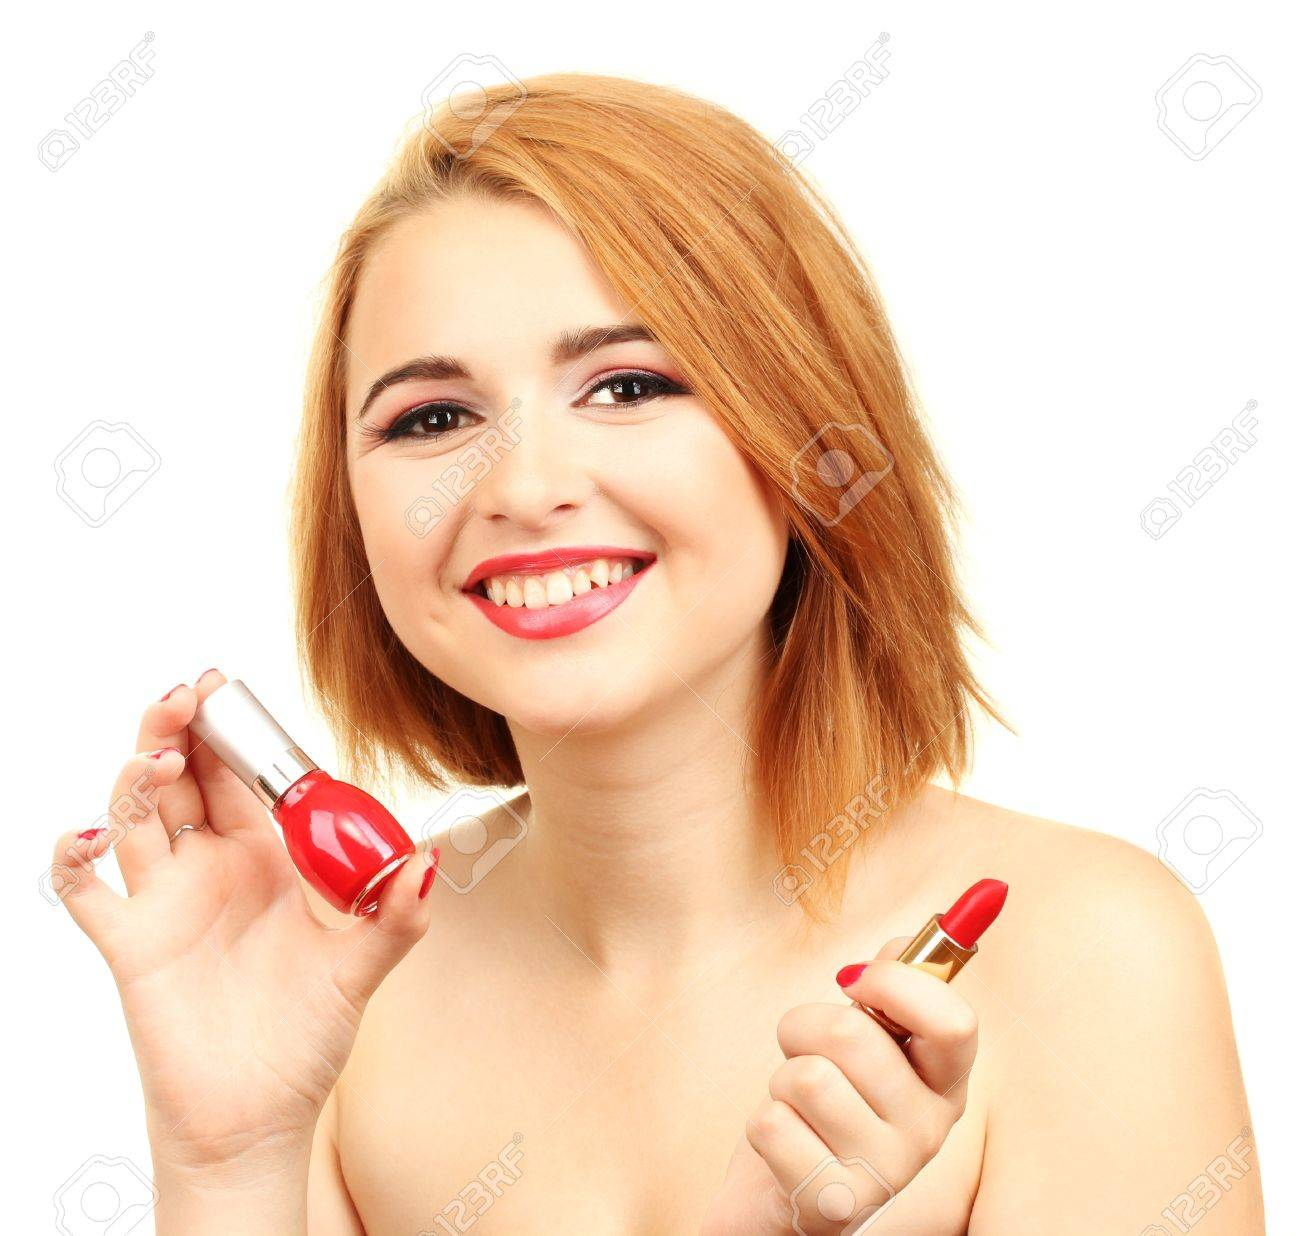 portrait of sexy young woman with red nail polish and lipstick Stock Photo - 14558982